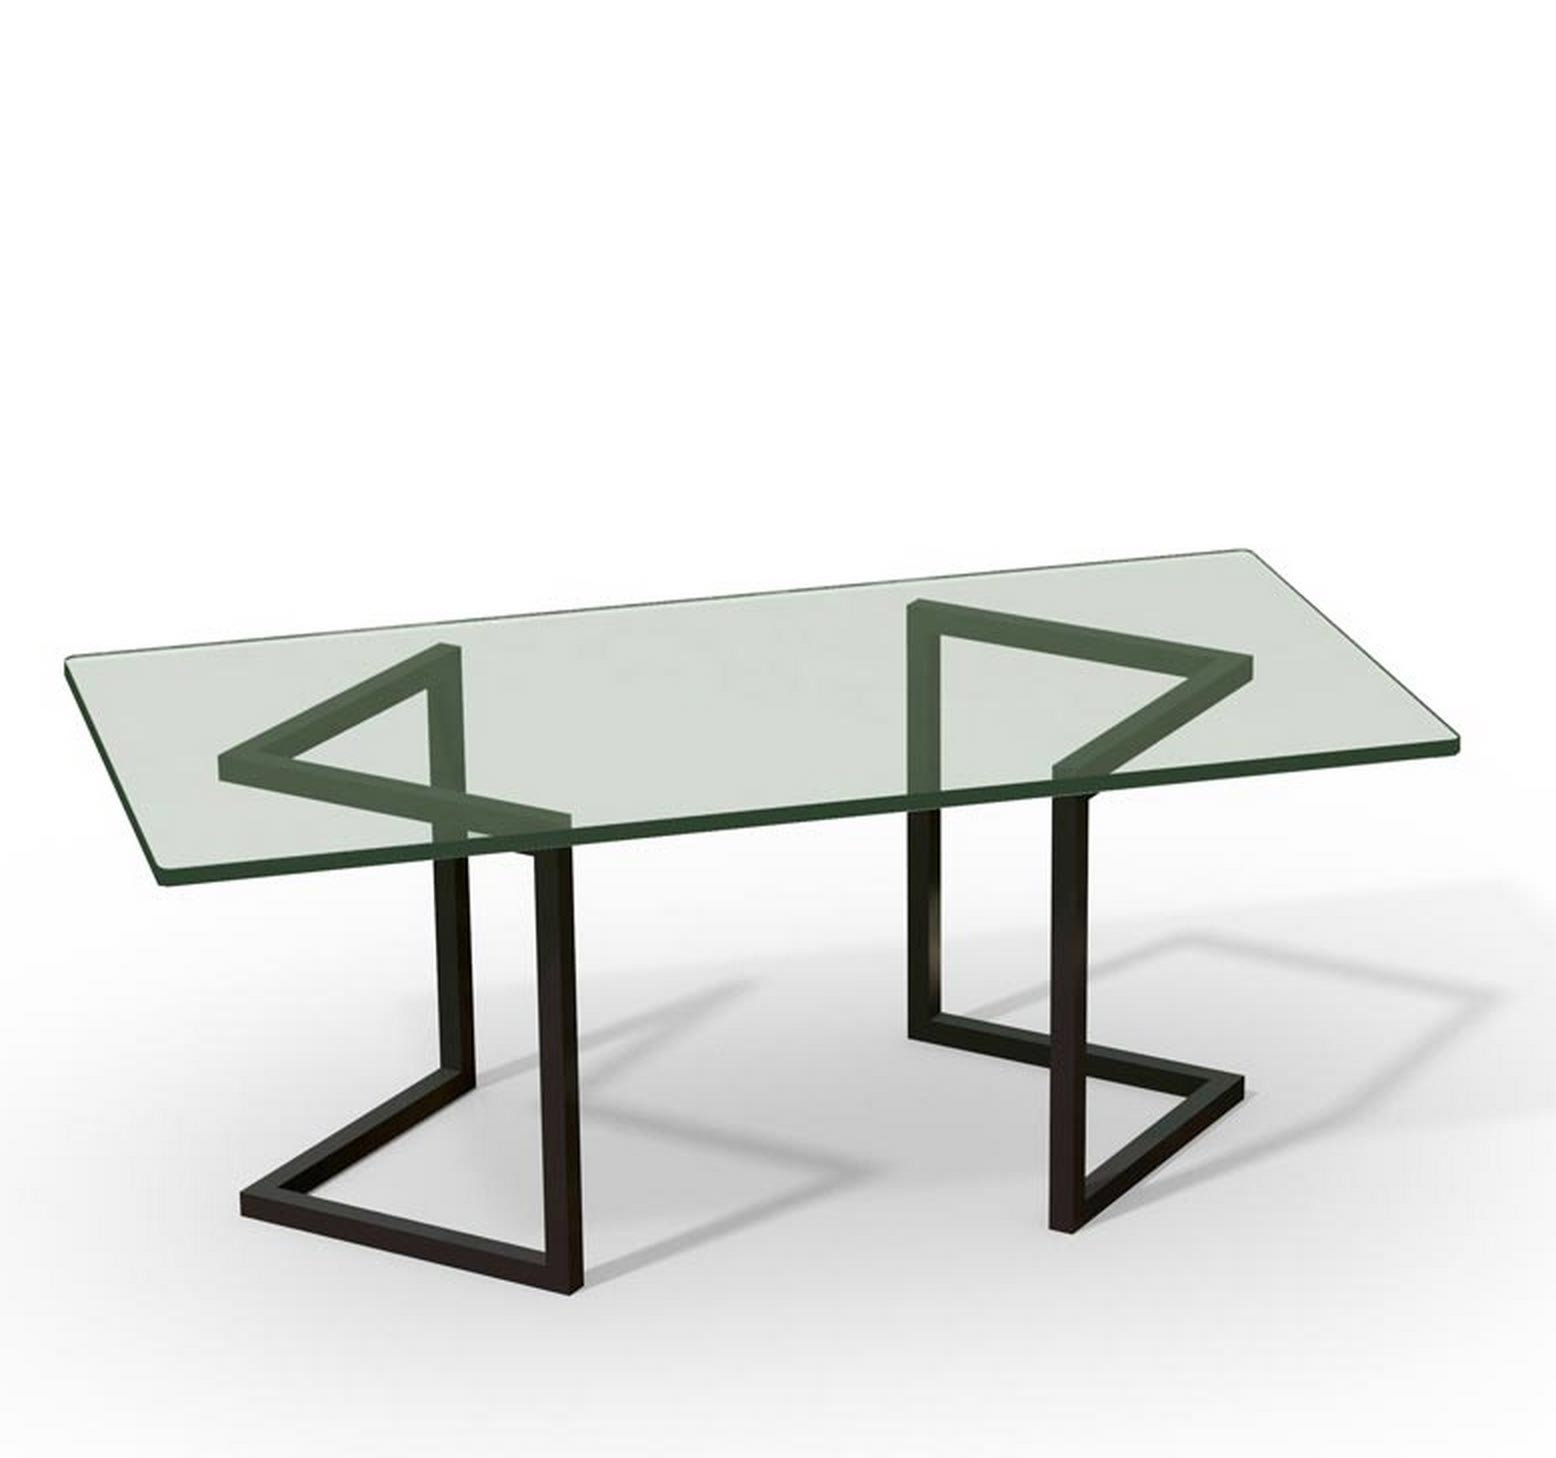 MORE OR LESS table from FAKTURA